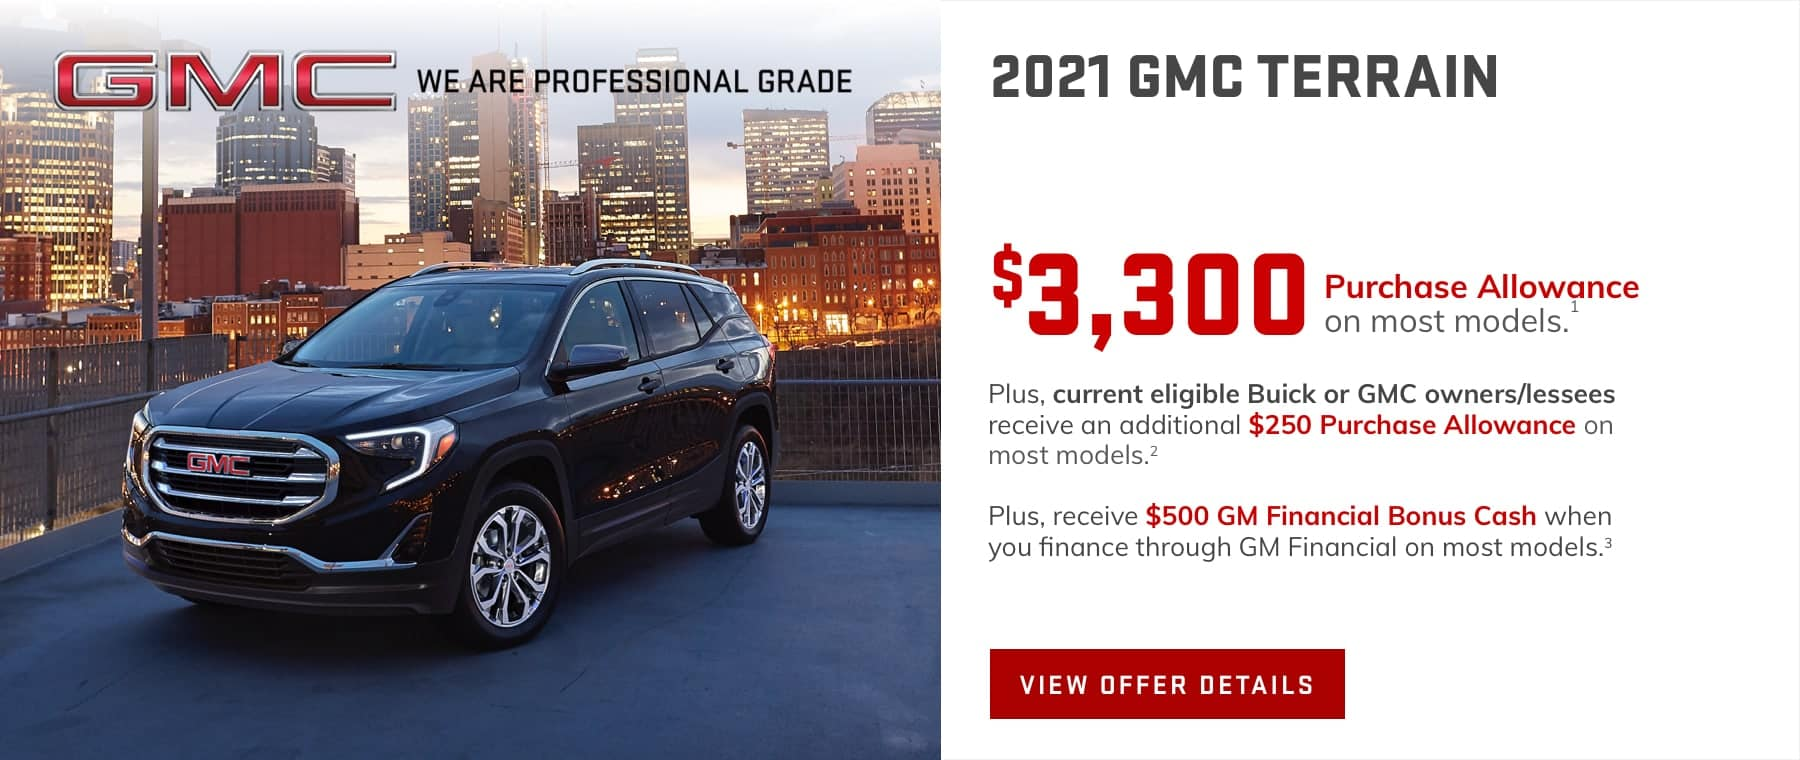 $3,300 Purchase Allowance on most models.1 Plus, current eligible Buick or GMC owners/lessees receive an additional $250 Purchase Allowance on most models.2 Plus, receive $500 GM Financial Bonus Cash when you finance through GM Financial on most models.3